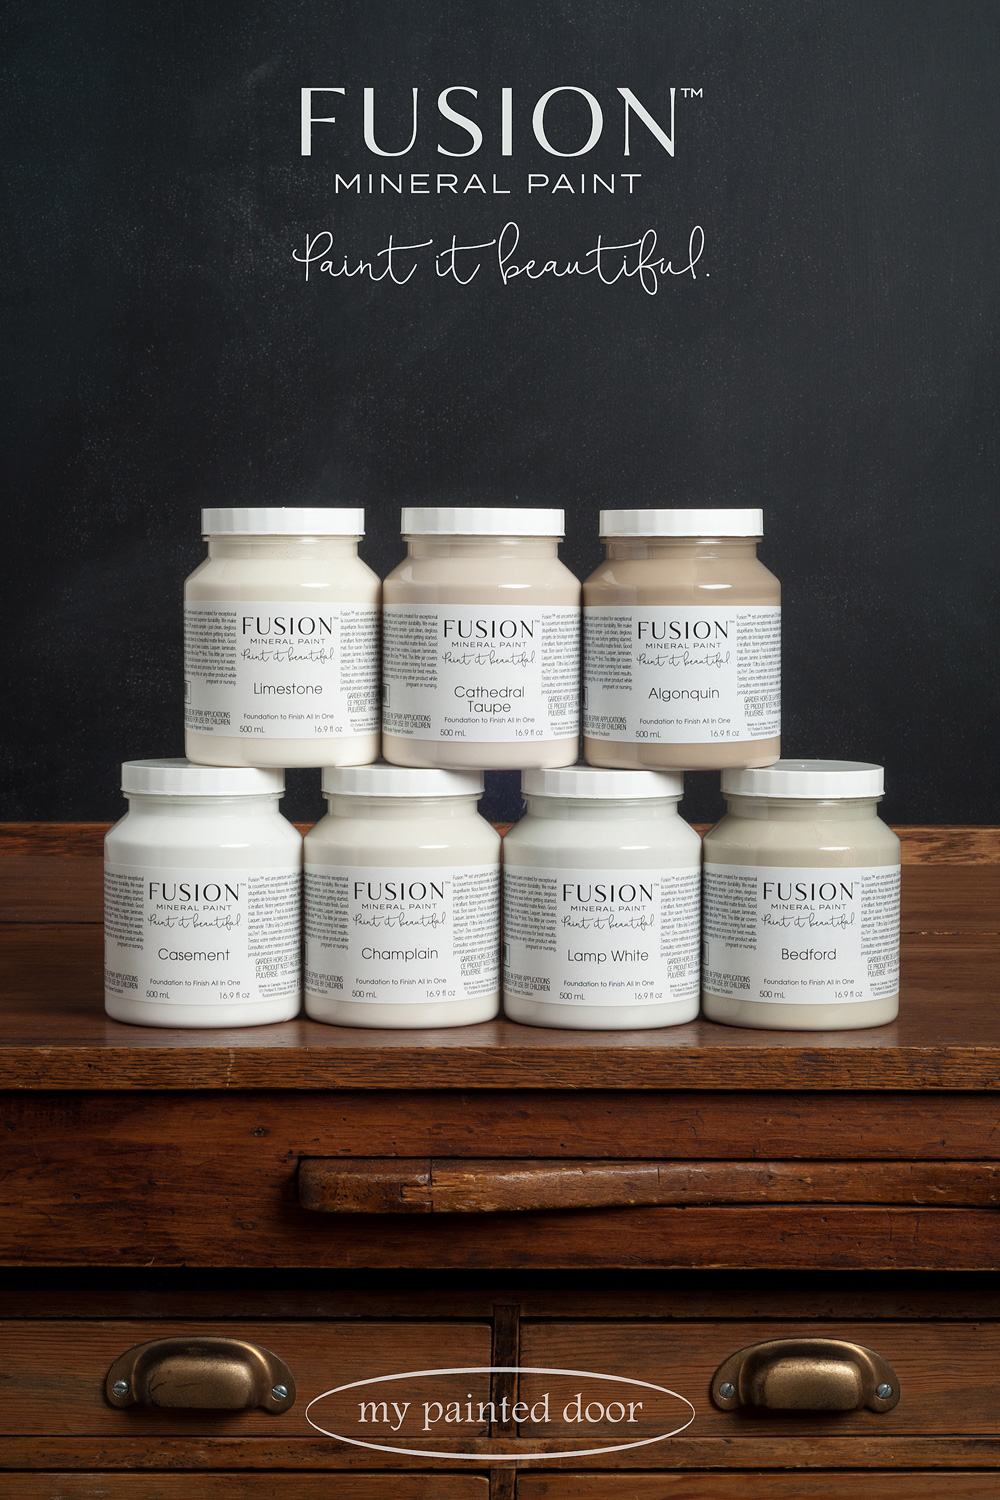 Fusion Mineral Paint - Paint it beautiful! Available at My Painted Door.